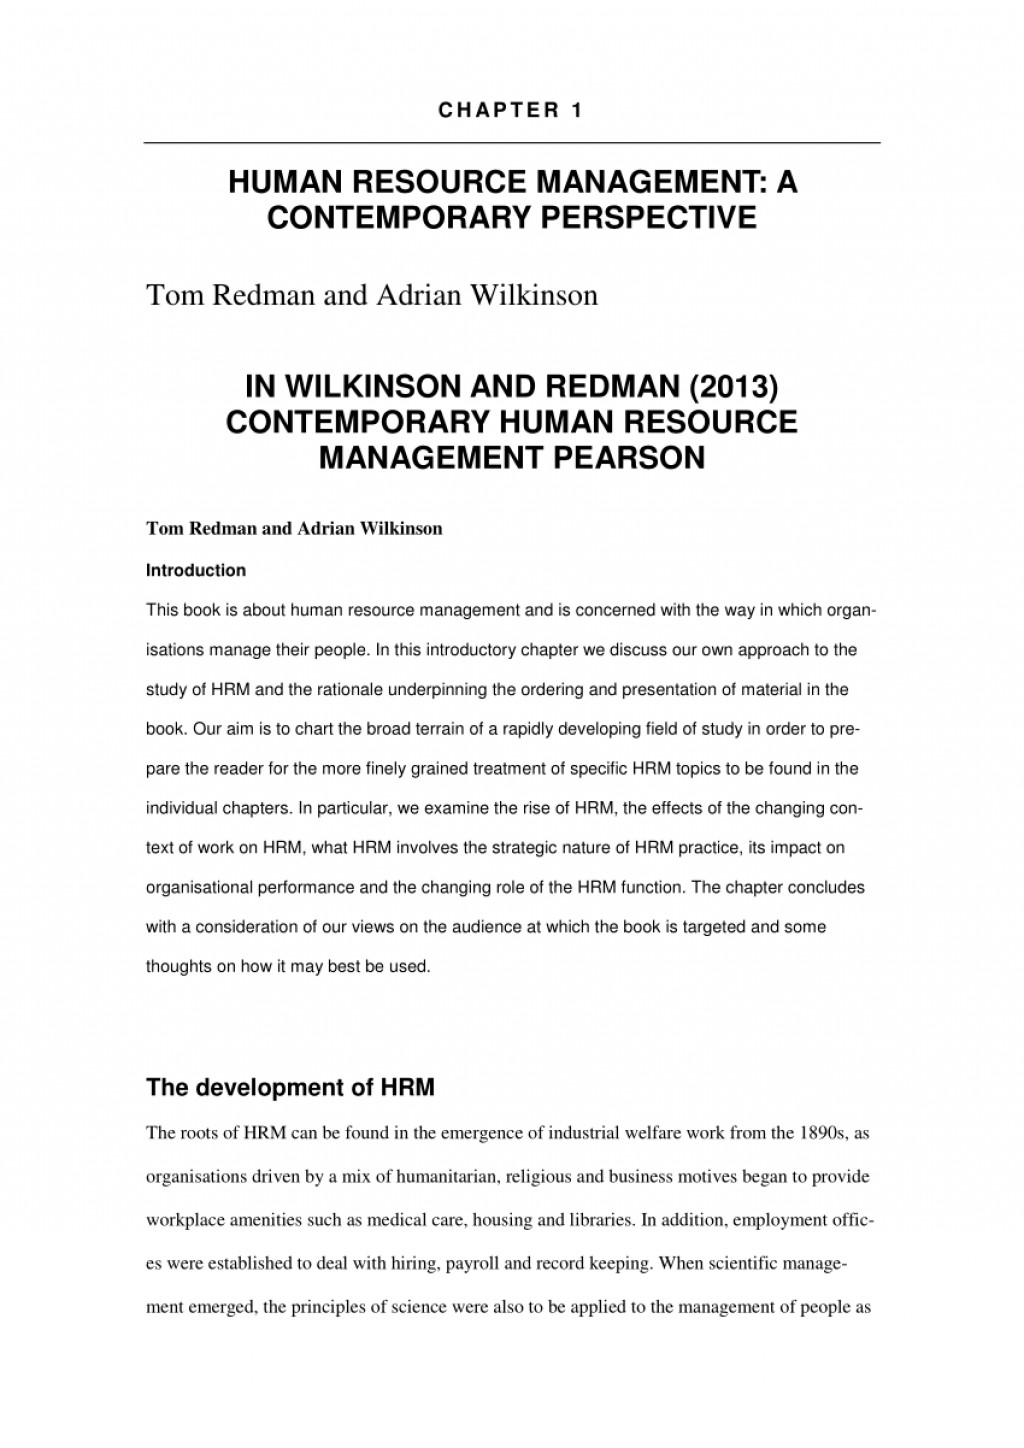 005 Largepreview Research Paper Hrm Papers Free Download Phenomenal Pdf Large